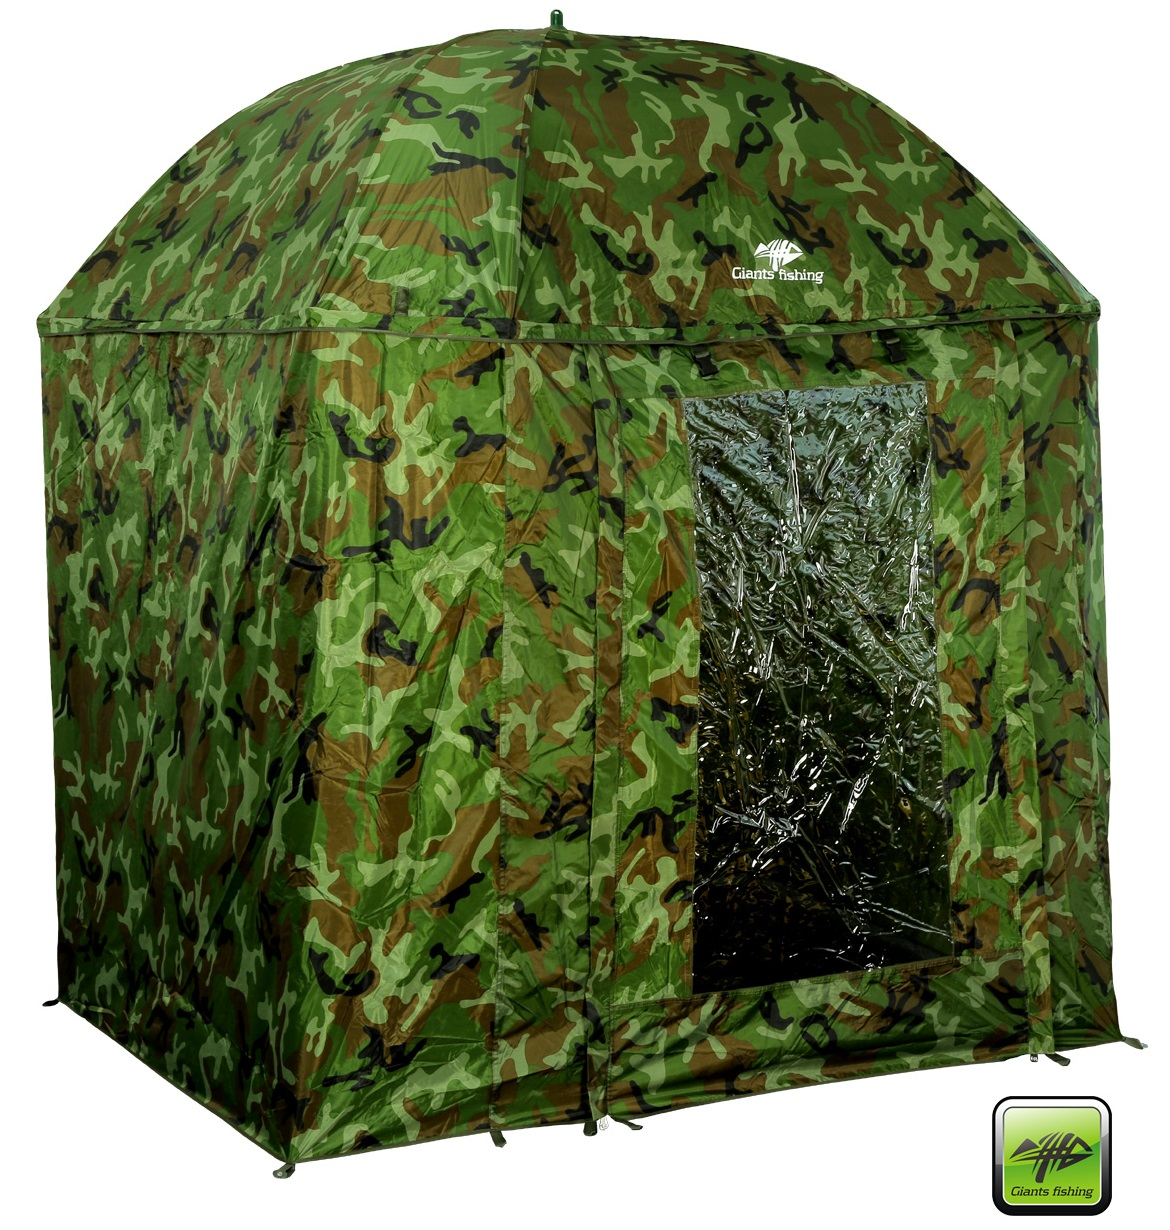 GIANTS FISHING - Deštník s bočnicí  Full Cover Square Camo Umbrella 250